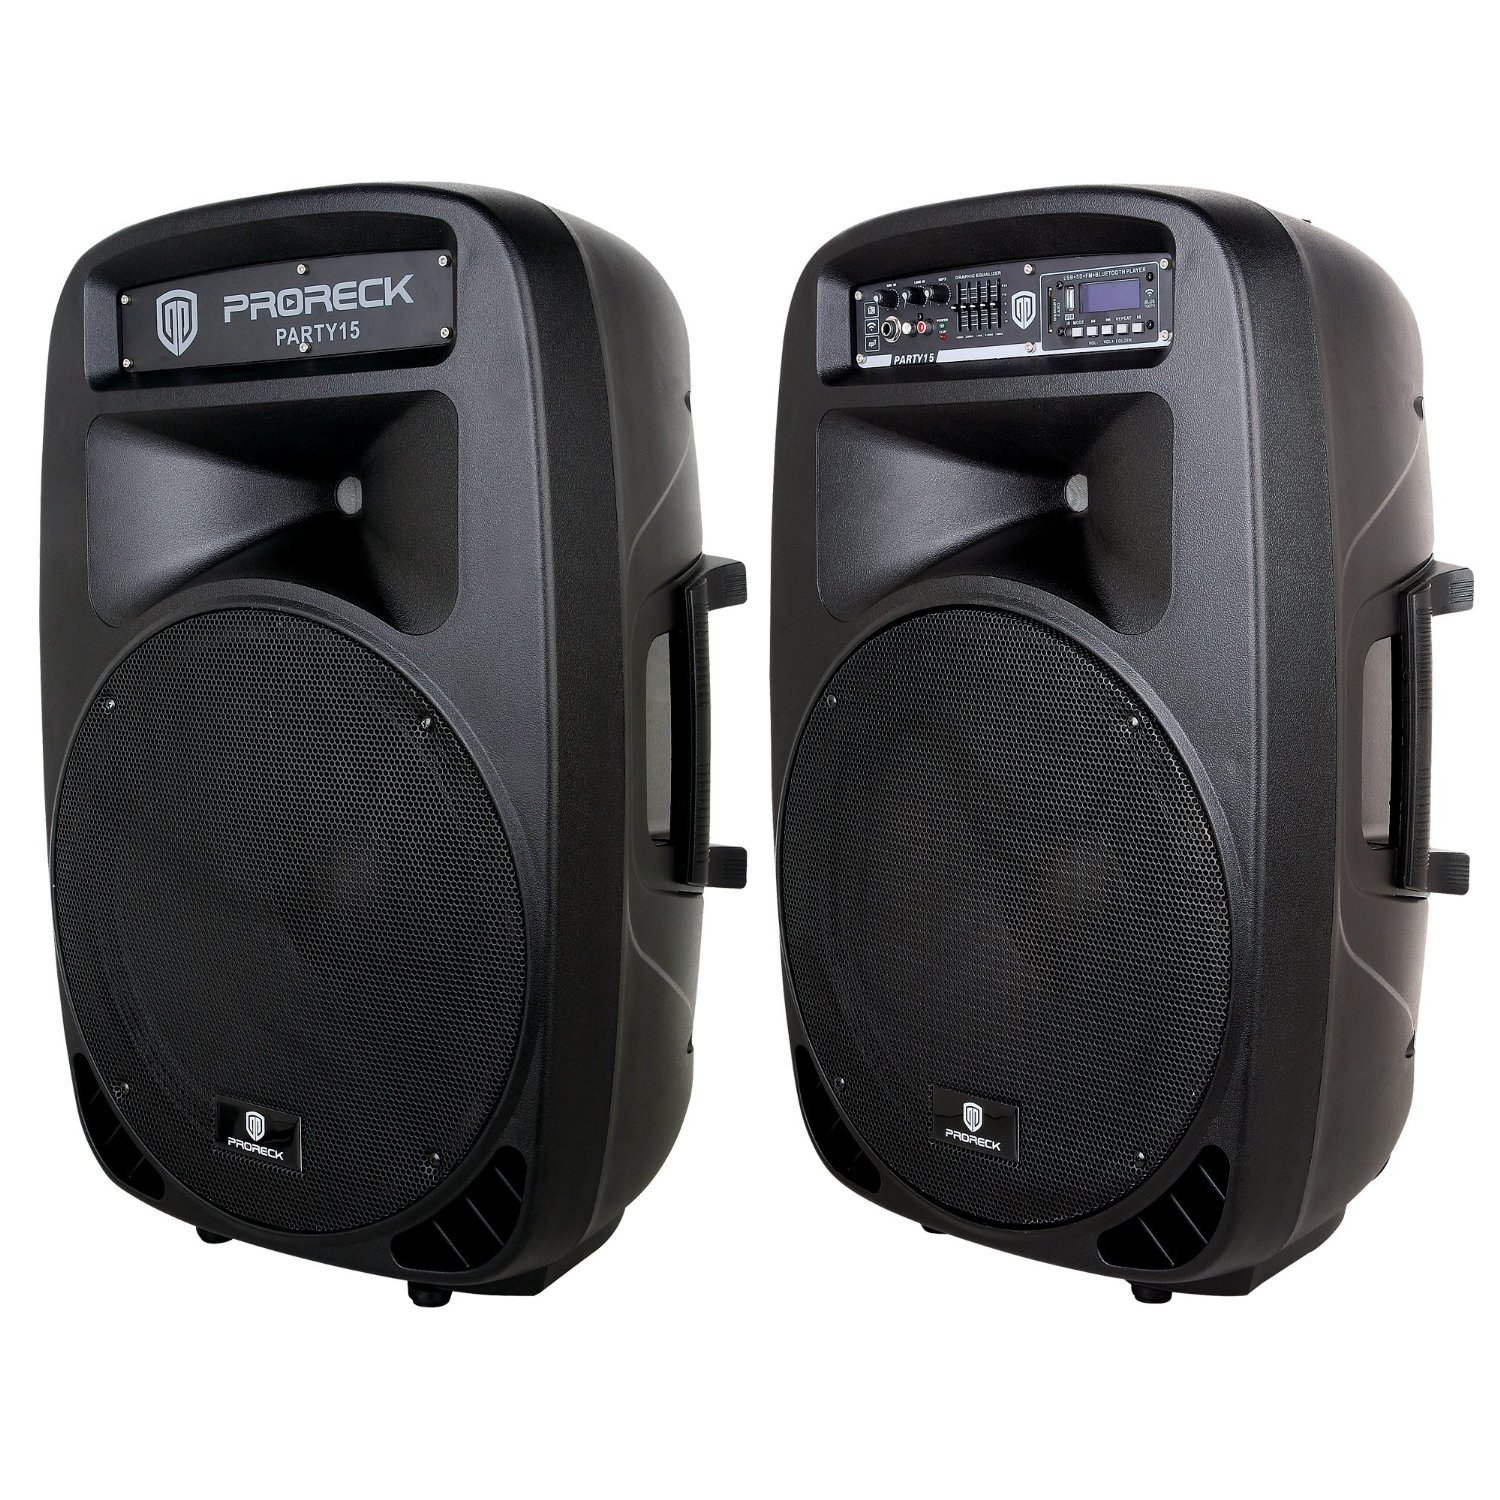 PRORECK PARTY 15 Portable 15-Inch 2000 Watt 2-Way Powered PA Speaker System Combo Set with Bluetooth/USB/SD Card Reader/ FM Radio/Remote Control/LED Light by PRORECK (Image #3)